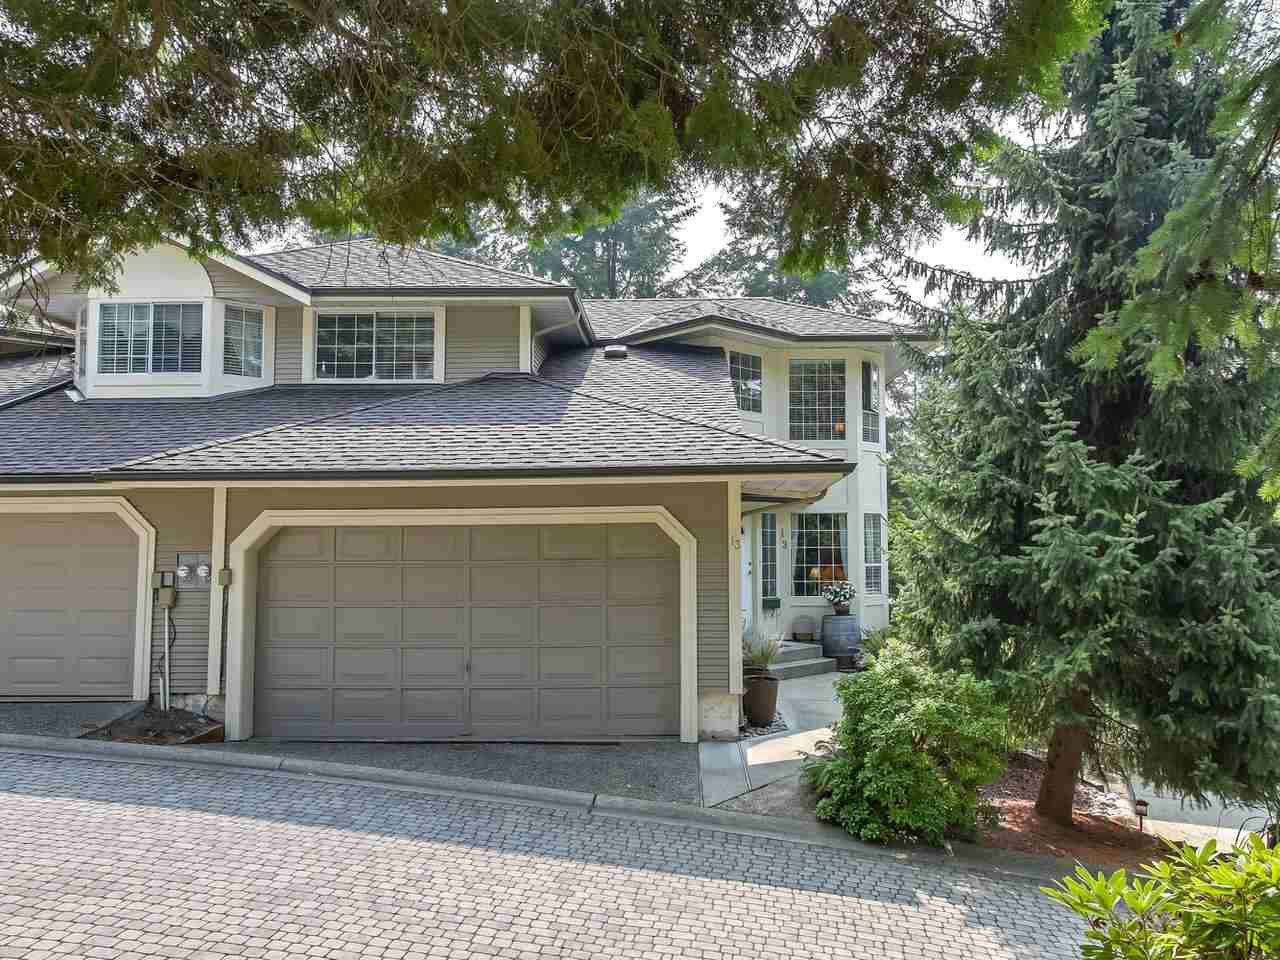 Main Photo: 13 101 PARKSIDE DRIVE in Port Moody: Heritage Mountain Townhouse for sale : MLS®# R2297667